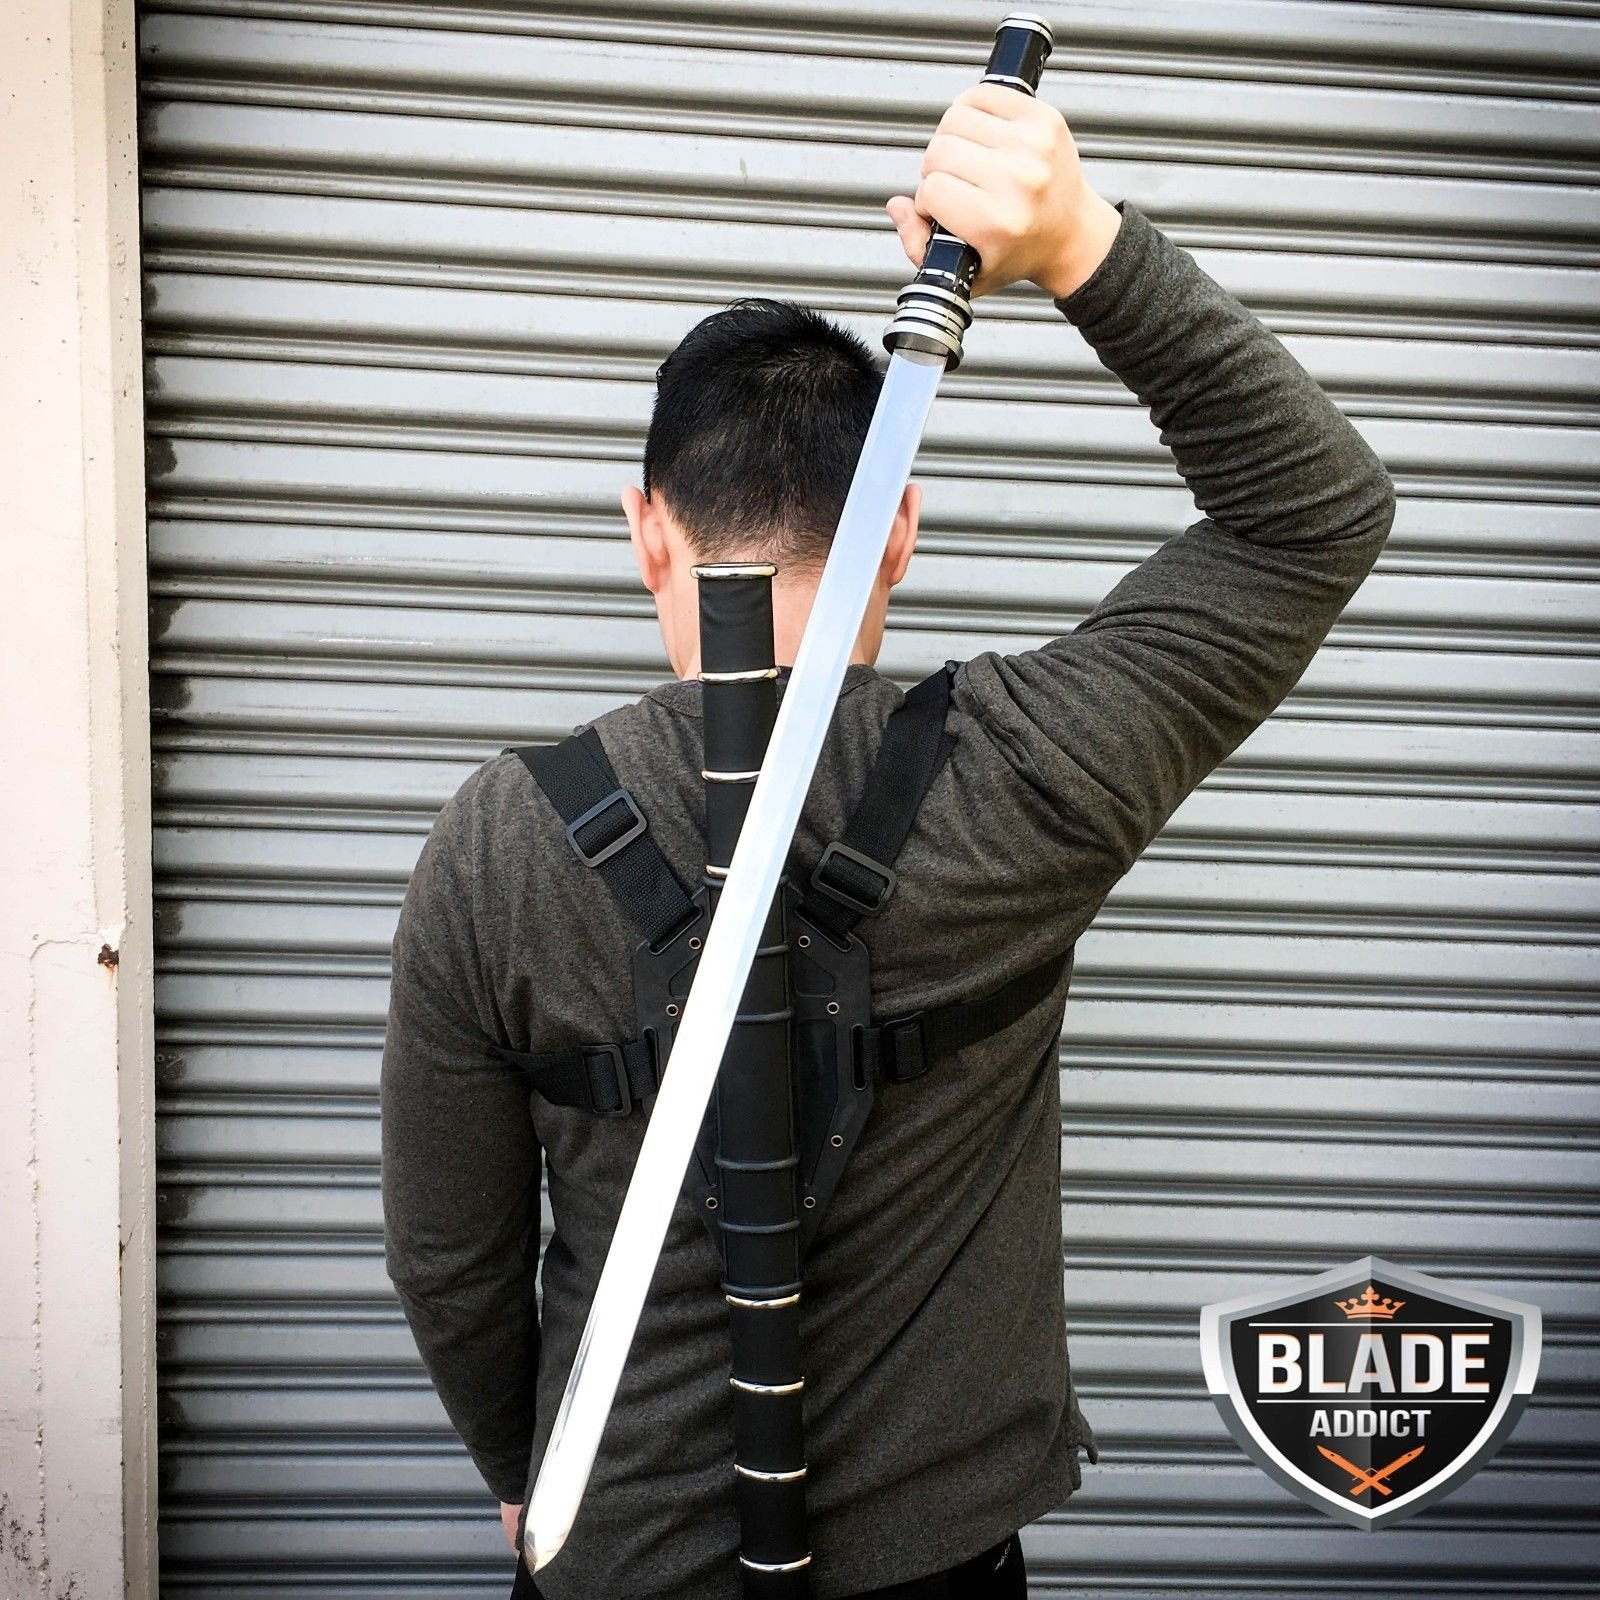 New BLADE SWORD OF THE DAYWALKER VAMPIRE SLAYER COSPLAY EcoGift Nice Knife with Sharp Blade + HARD SHEATH HARNESS- Great For Fun And Practical Use